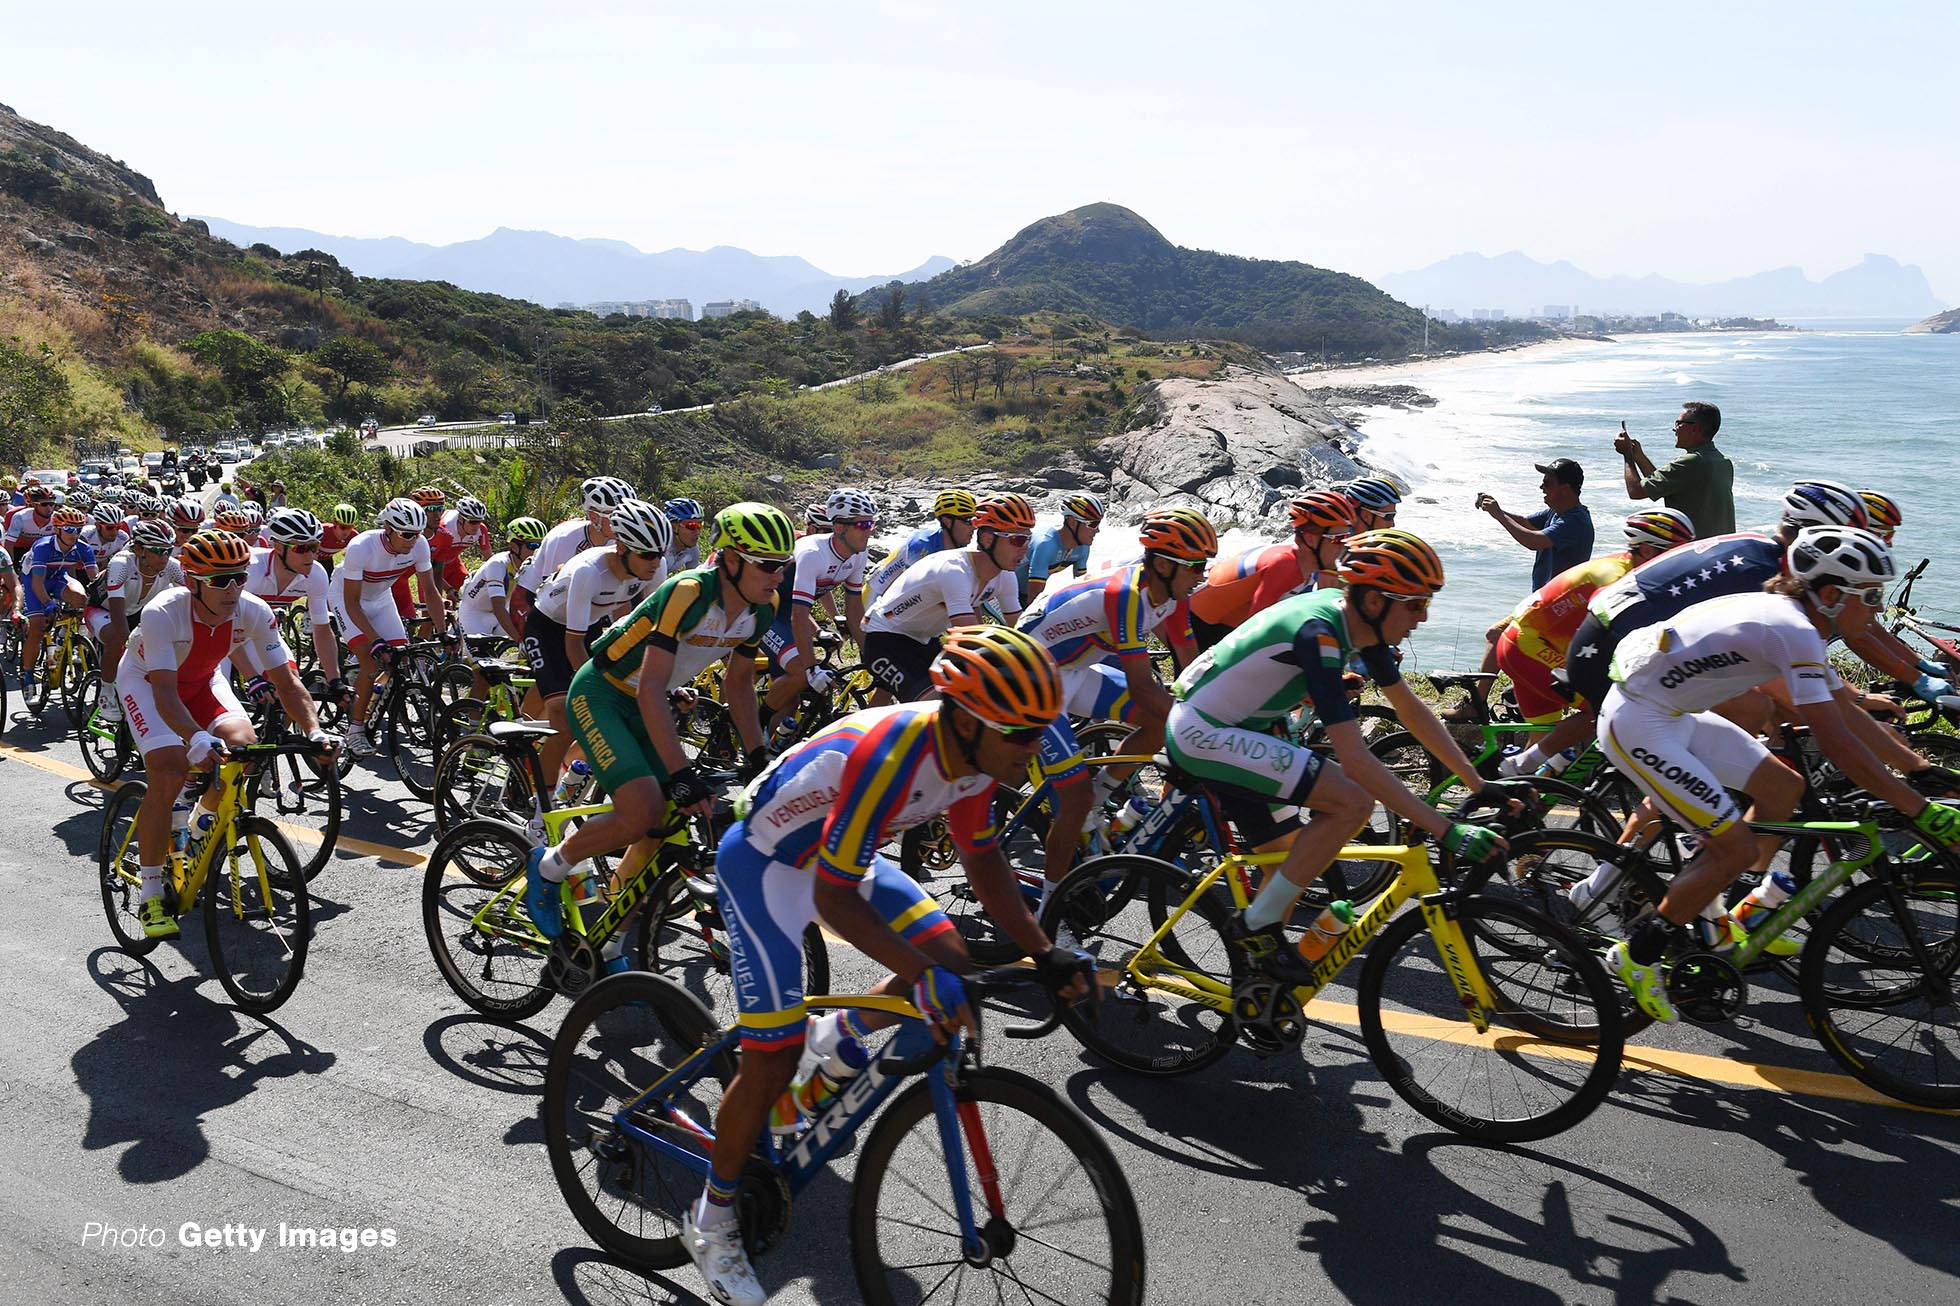 The peloton is on the way in the Men???s Road Race of the Cycling Road event during the Rio 2016 Olympic Games at Fort Copacabana, Rio de Janeiro, Brazil on 06 Aug 2016. Photo: Sebastian Kahnert/dpa | usage worldwide (Photo by Sebastian Kahnert/picture alliance via Getty Images)